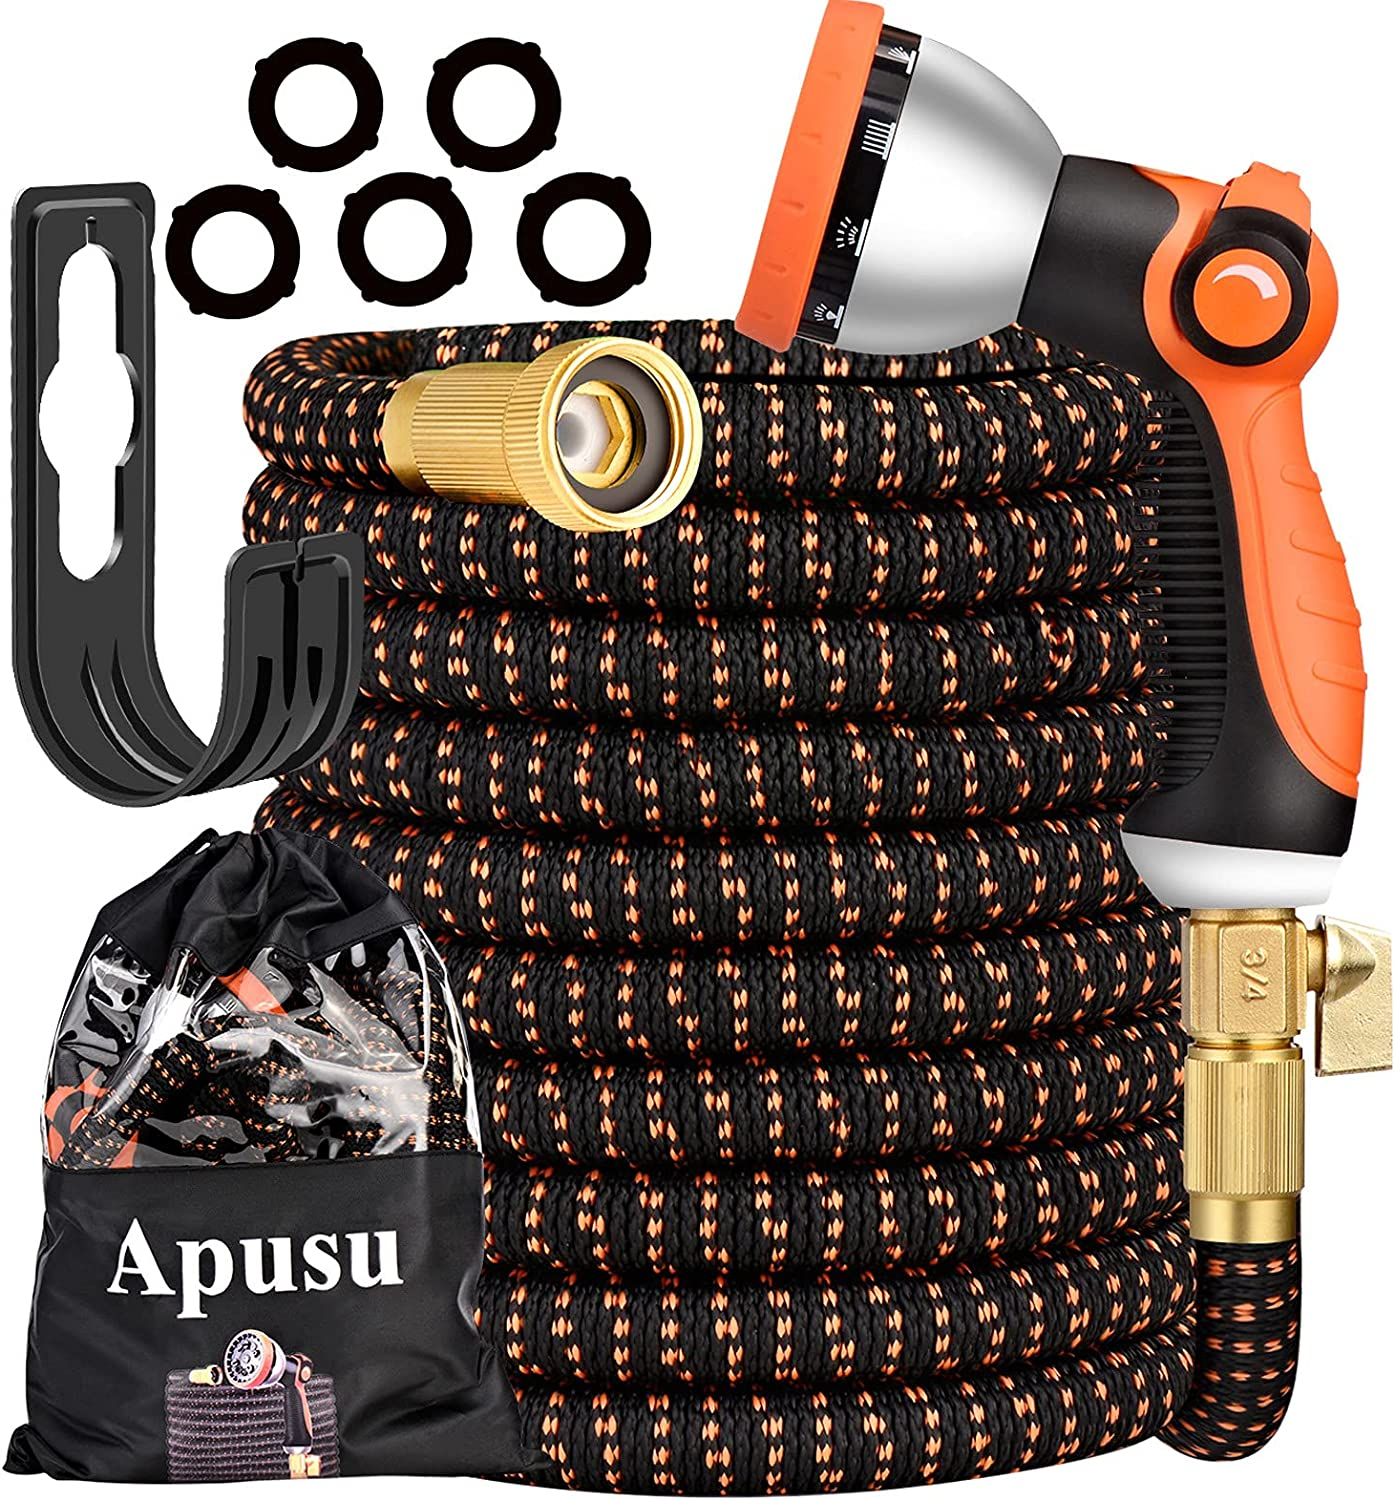 Apusu Expandable Hose 50ft- Max 70% OFF Water Durable- Ranking TOP1 Lightweight Flex